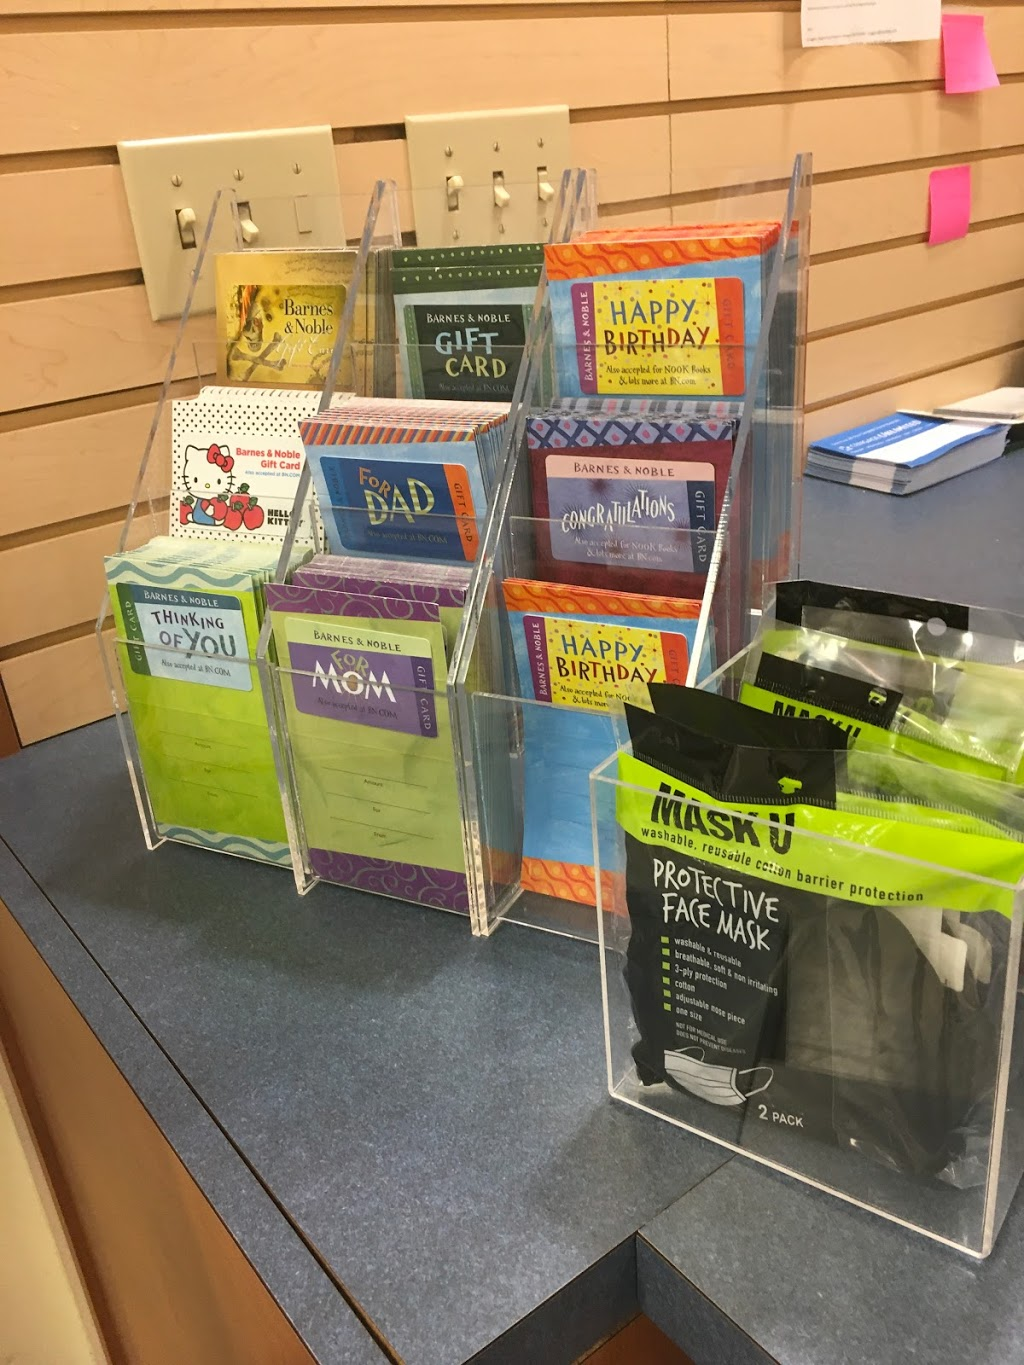 Barnes & Noble College - book store  | Photo 7 of 7 | Address: 2500 Carlyle Ave, Belleville, IL 62221, USA | Phone: (618) 222-5334